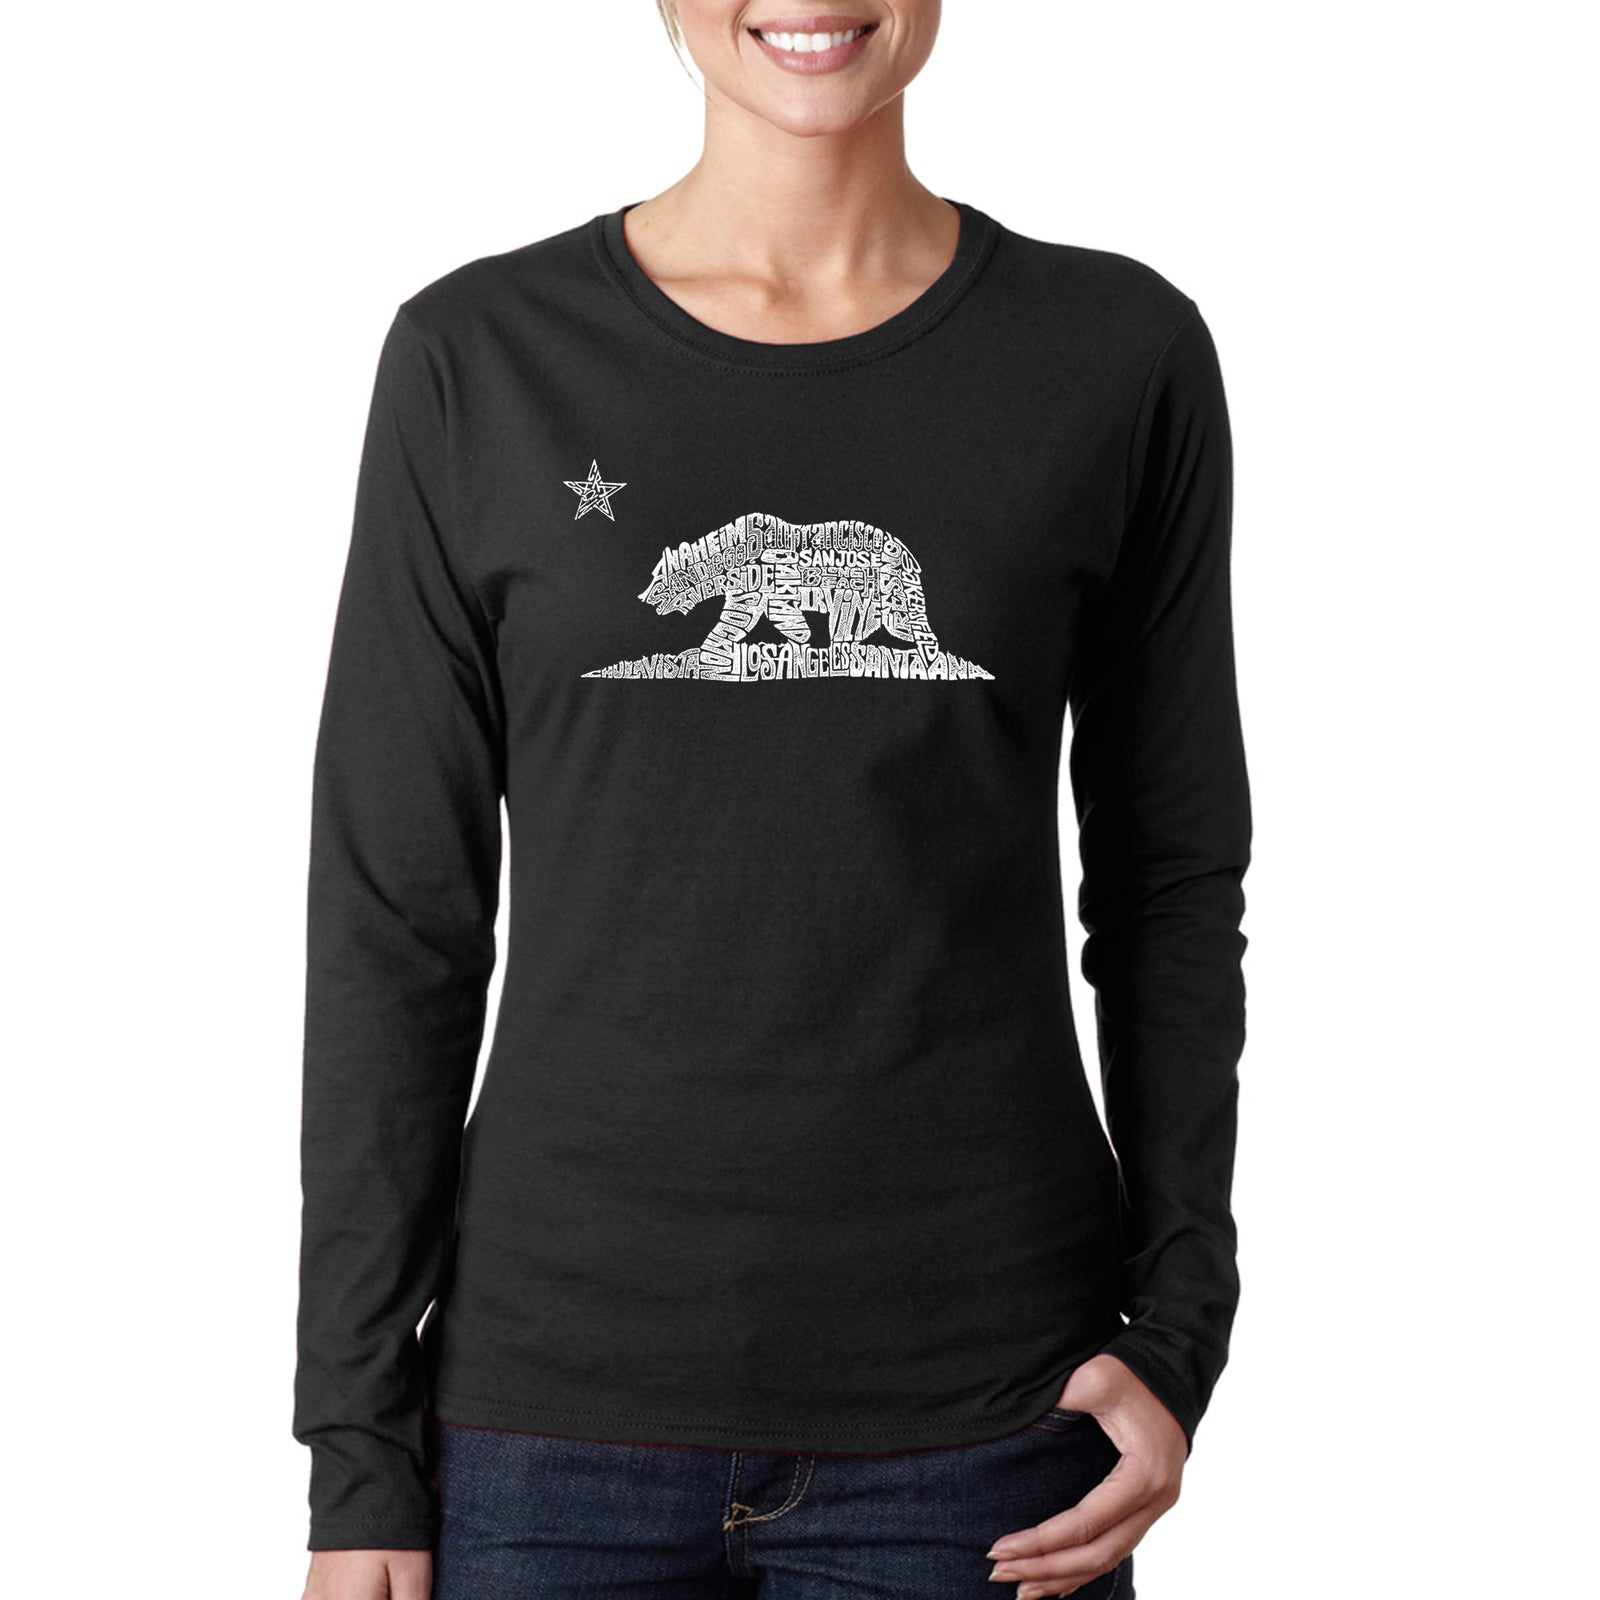 Women's Long Sleeve T-Shirt - California Bear